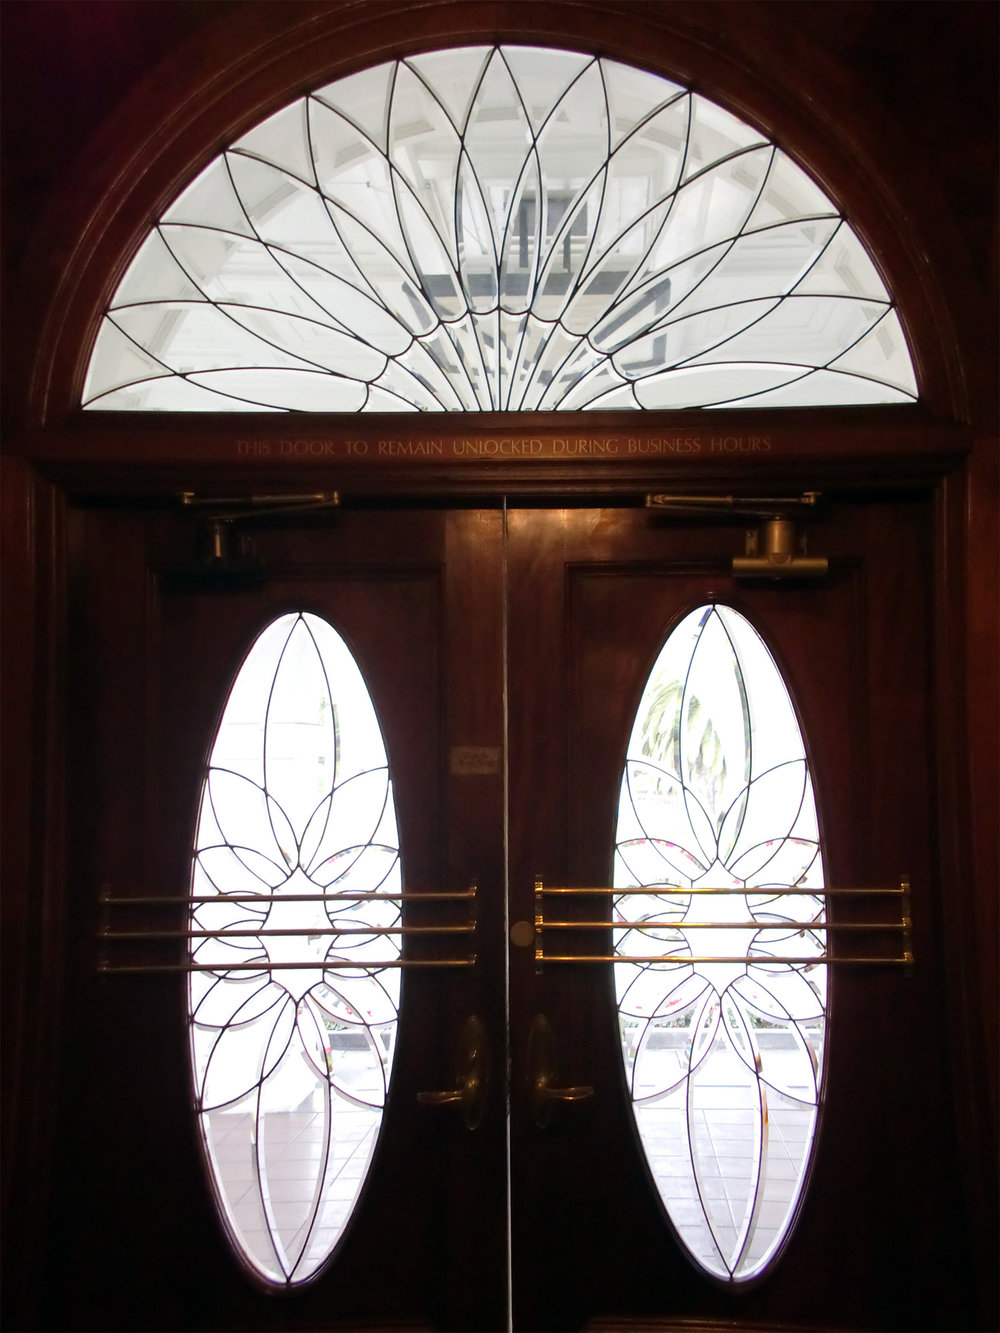 custom beveled glass bevel leaded glass stained glass arch door transom window palo alto atherton california san francisco.jpg